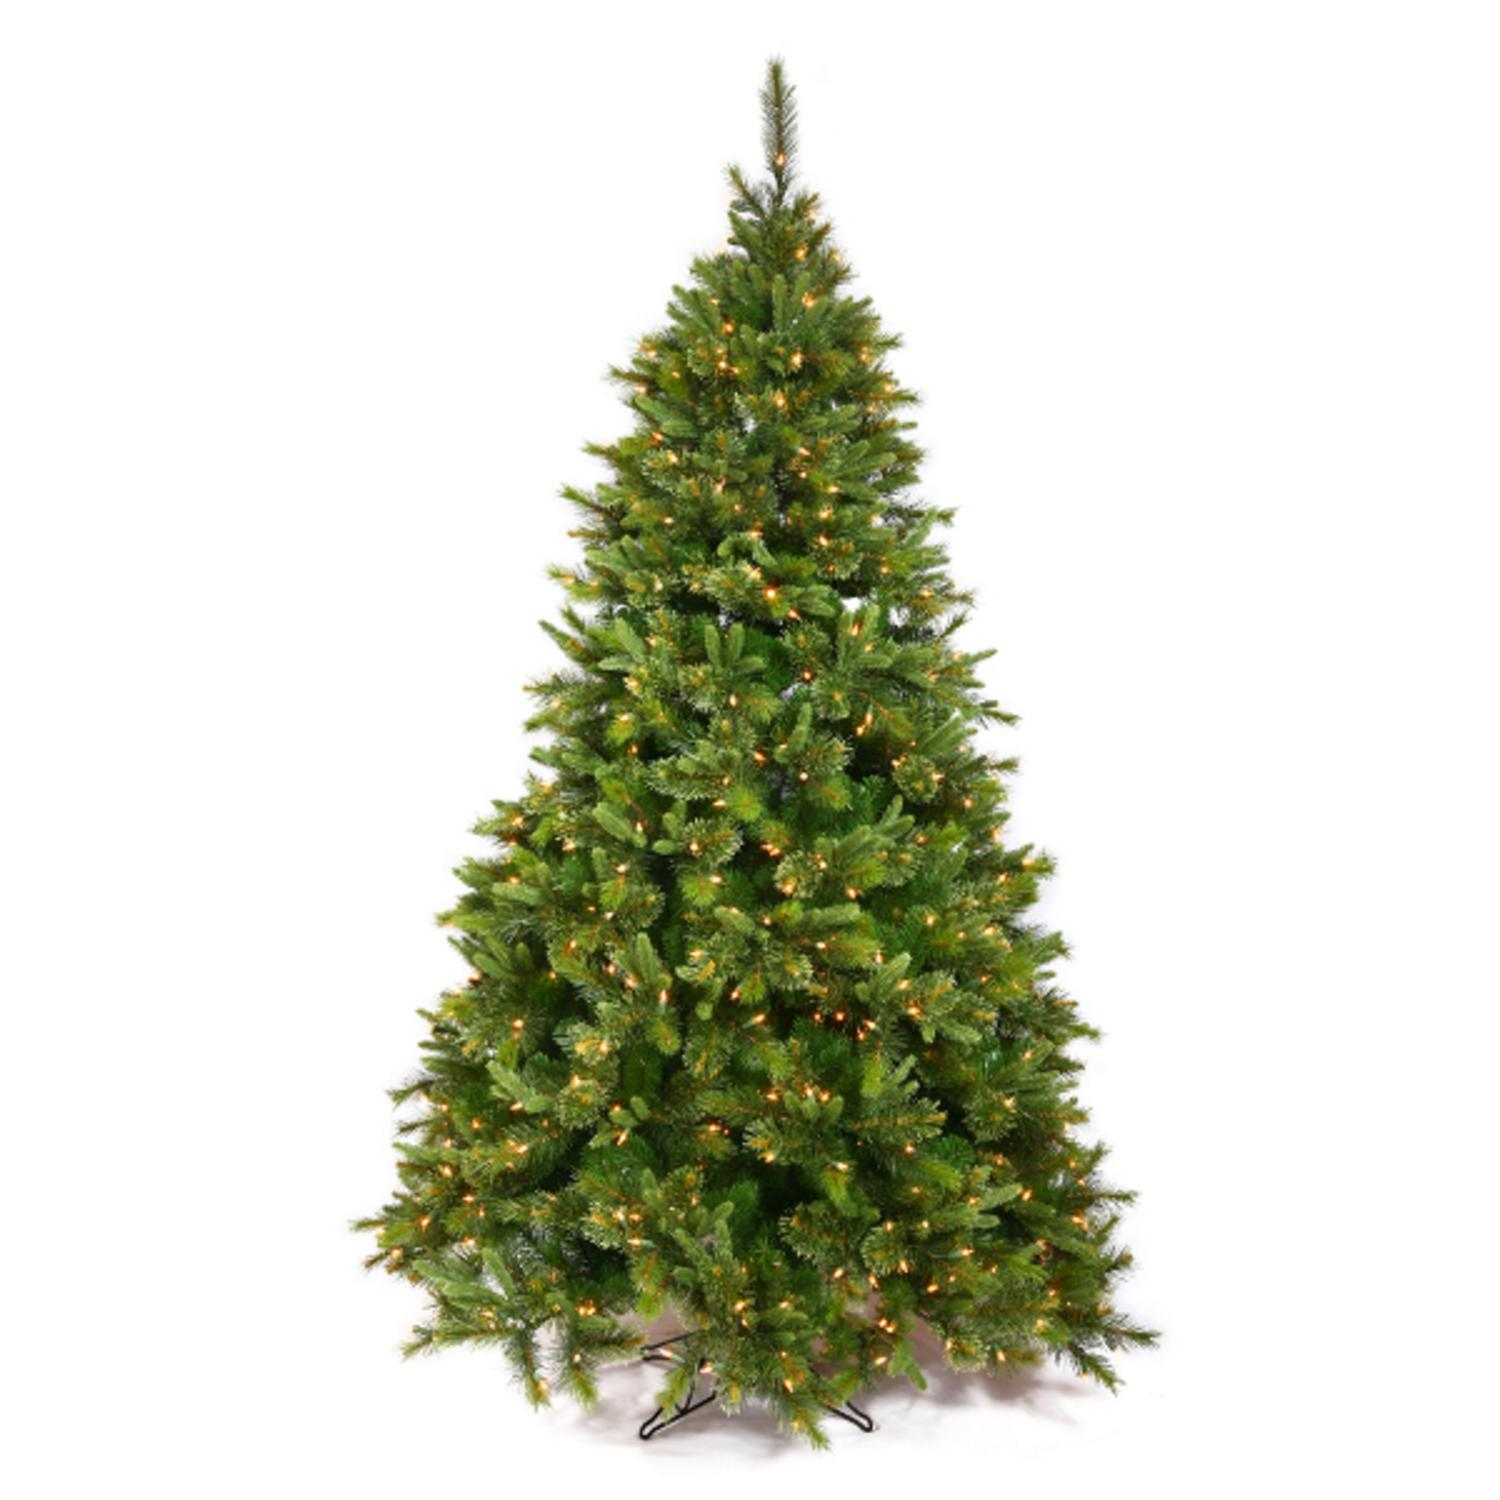 12' Pre-Lit Mixed Pine Cashmere Full Artificial Christmas Tree - Clear Lights